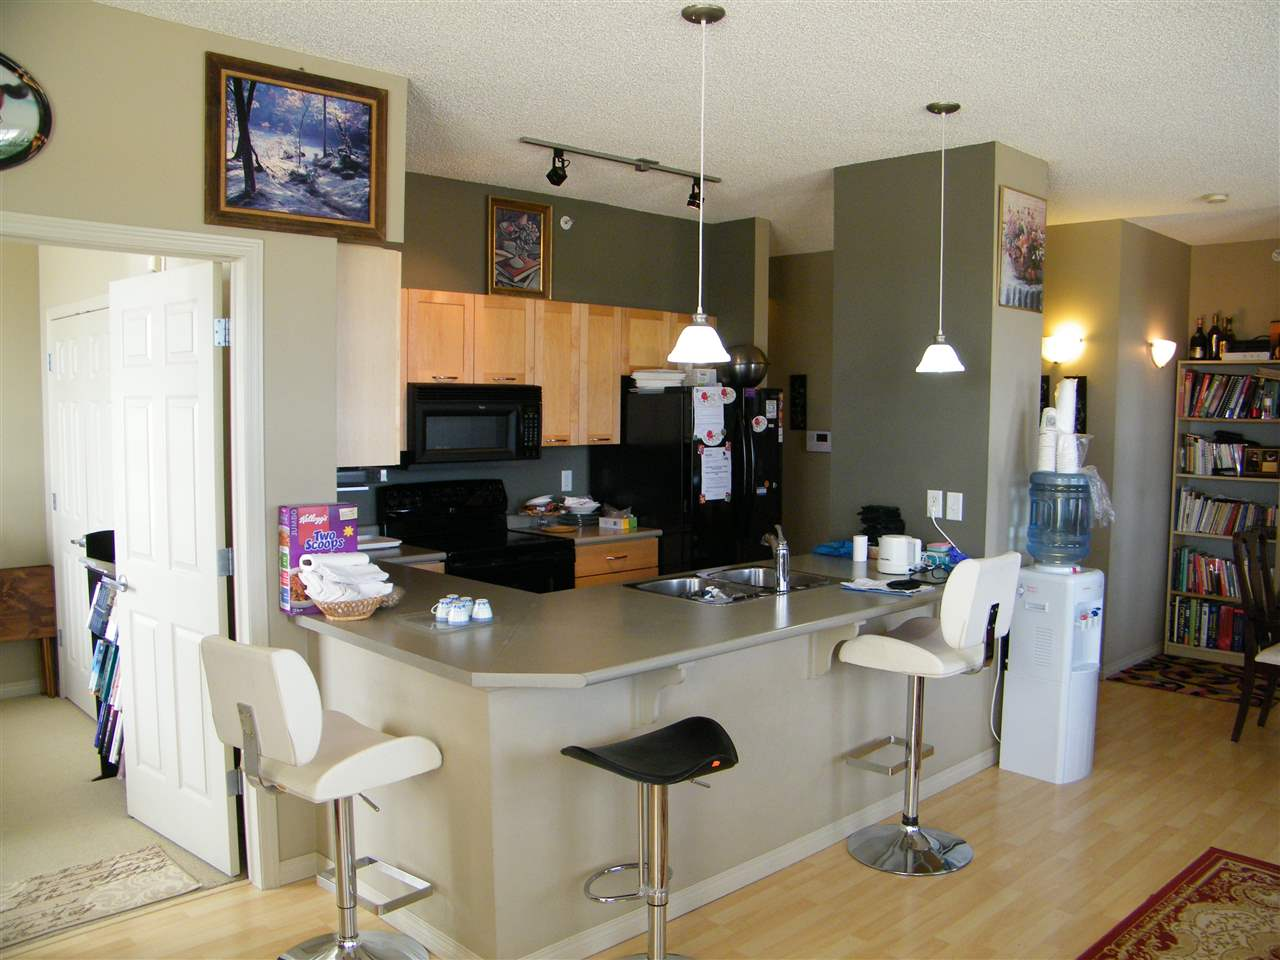 Photo 14: 2-615 4245 139 Avenue in Edmonton: Zone 35 Condo for sale : MLS® # E4068635